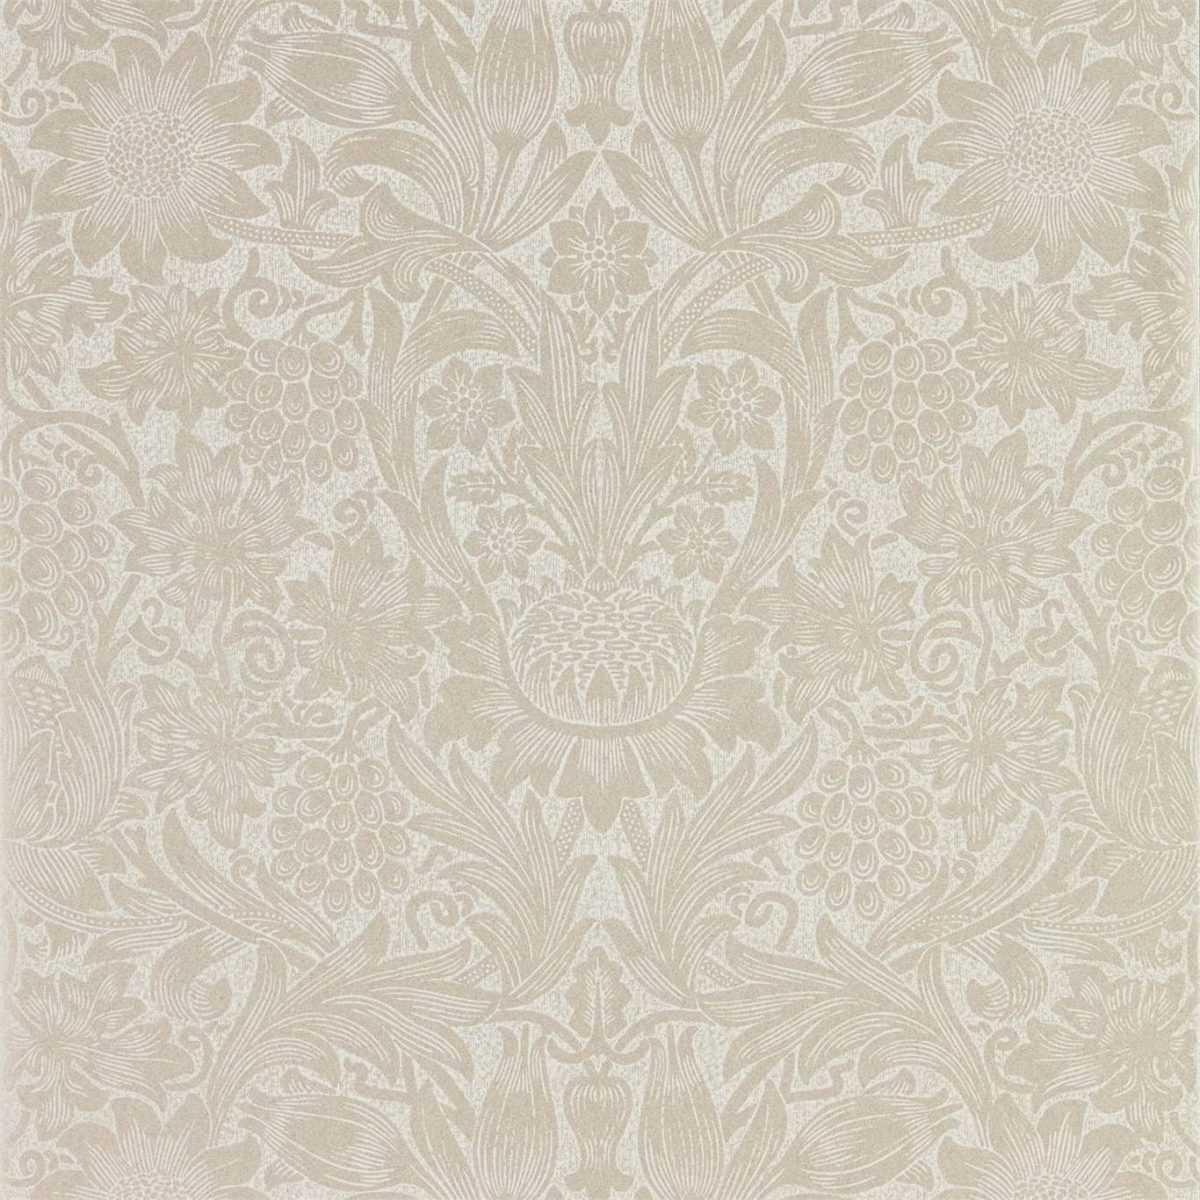 Morris & Co Tapet Pure Sunflower Pearl / Ivory